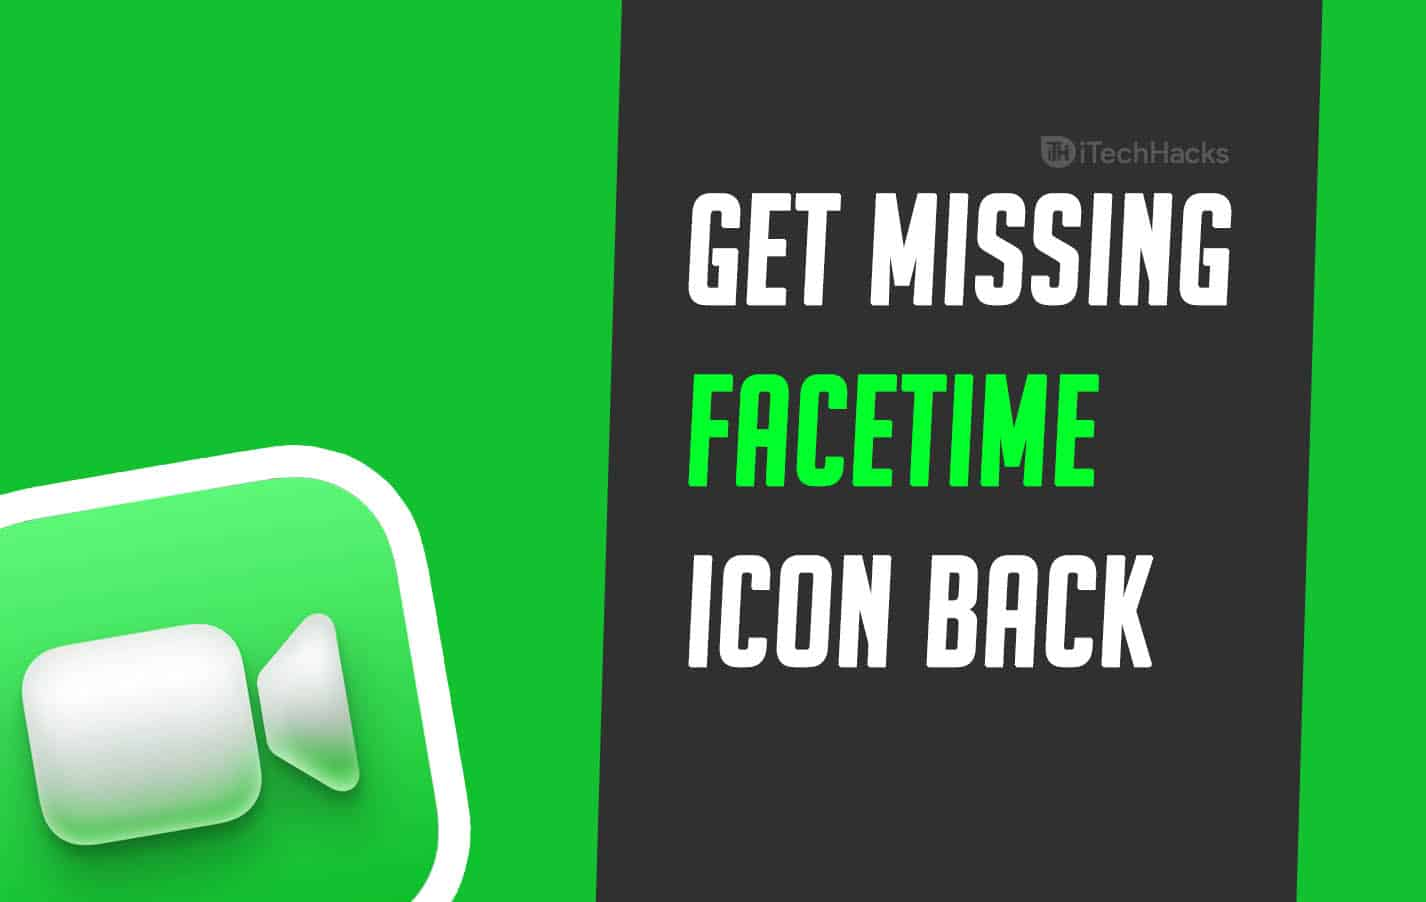 How to Get Missing Facetime Icon Back on iPhone/iPad